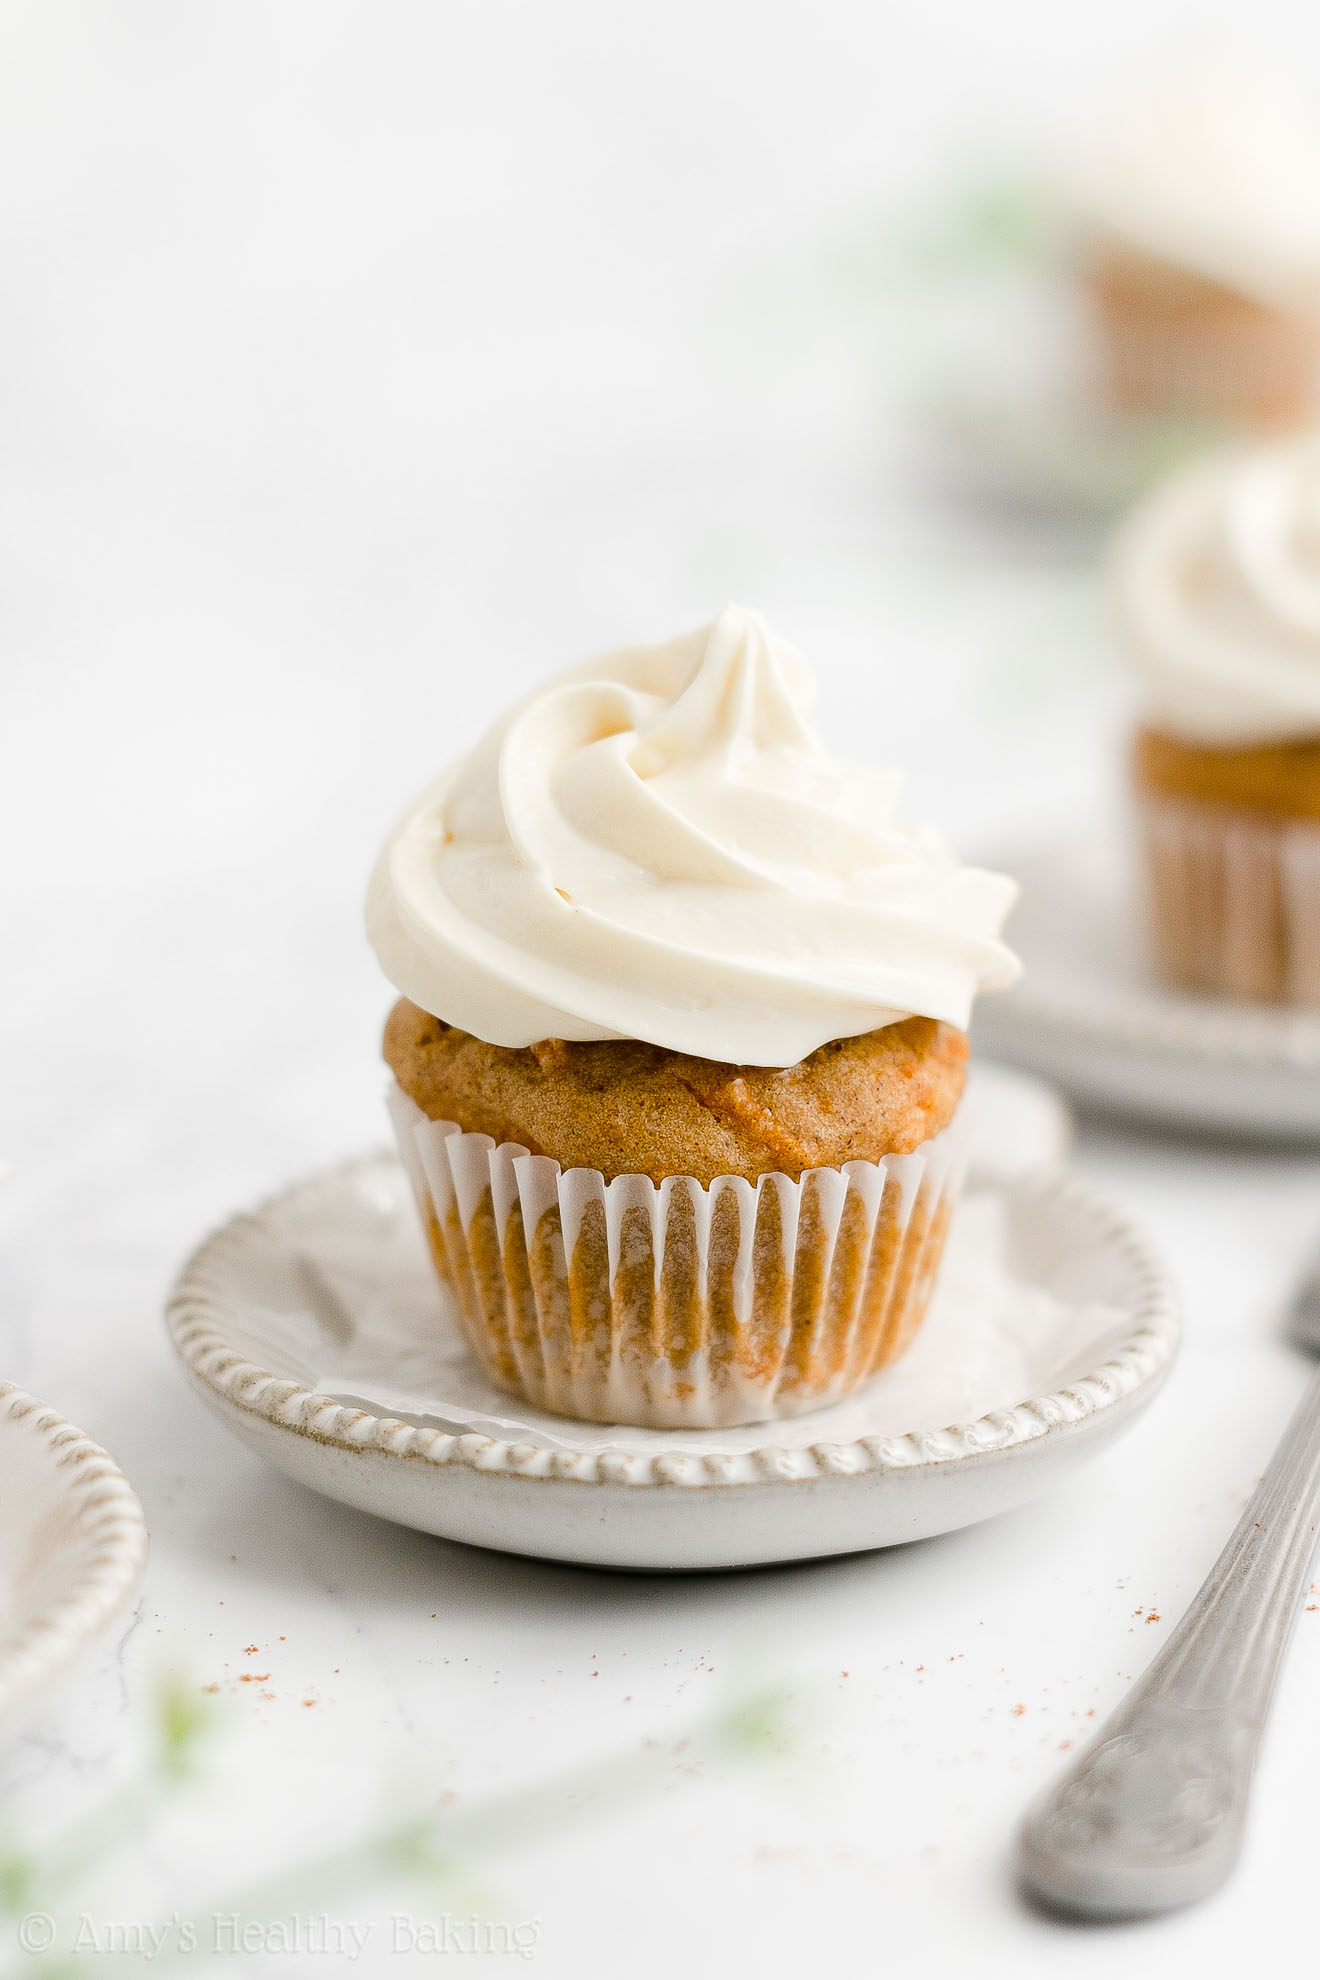 ULTIMATE Healthy Low Calorie No Sugar Gluten Free Mini Carrot Cake Cupcakes